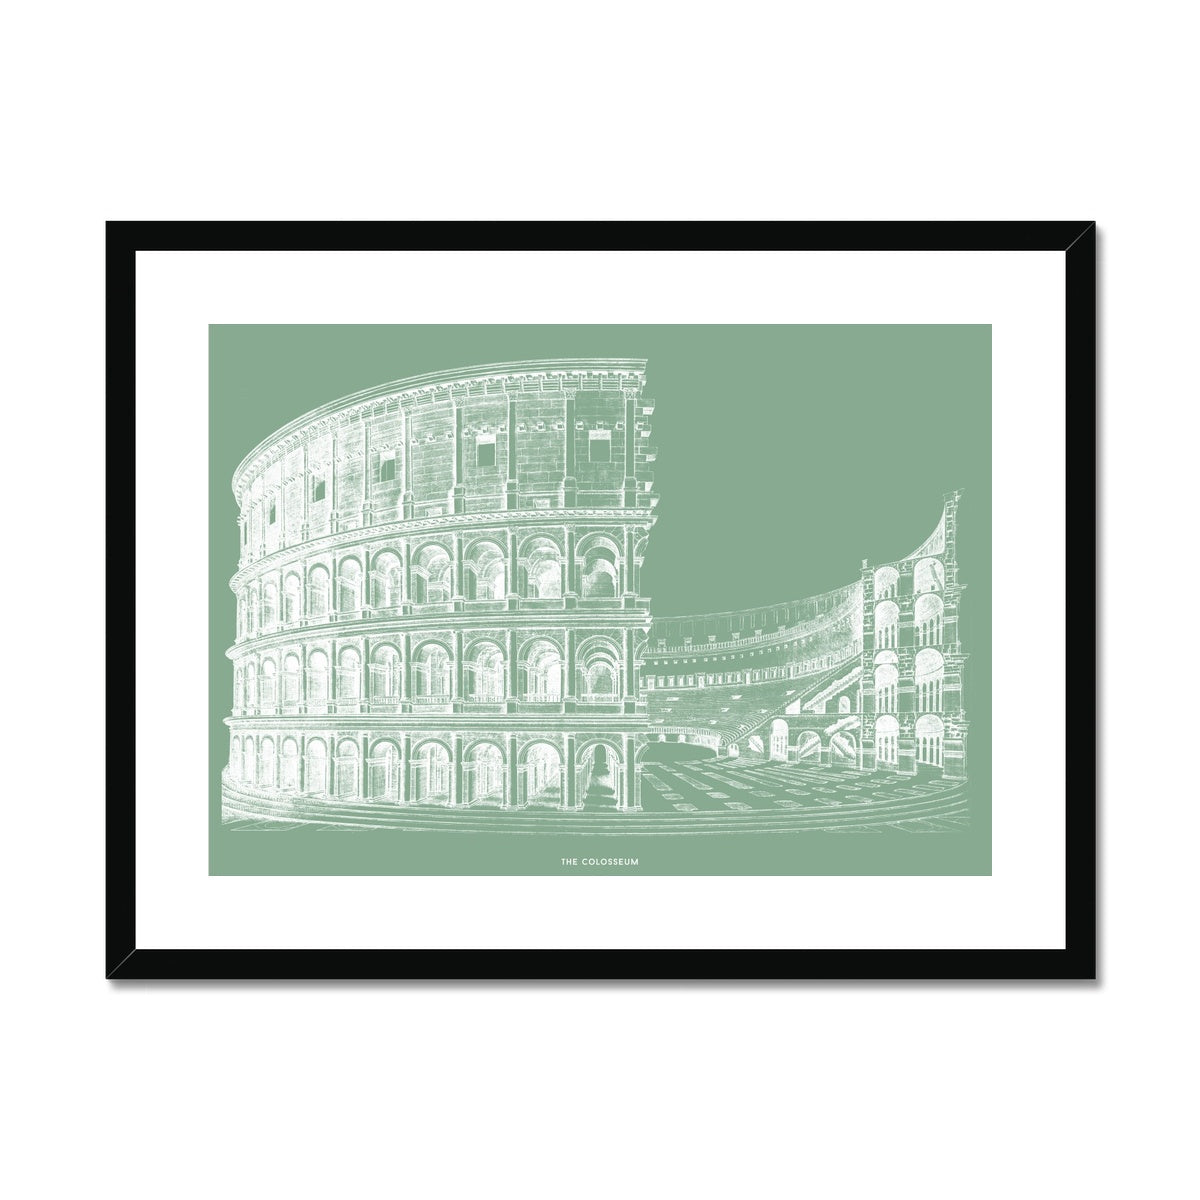 The Colosseum - Alternative Cross Section - Green -  Framed & Mounted Print